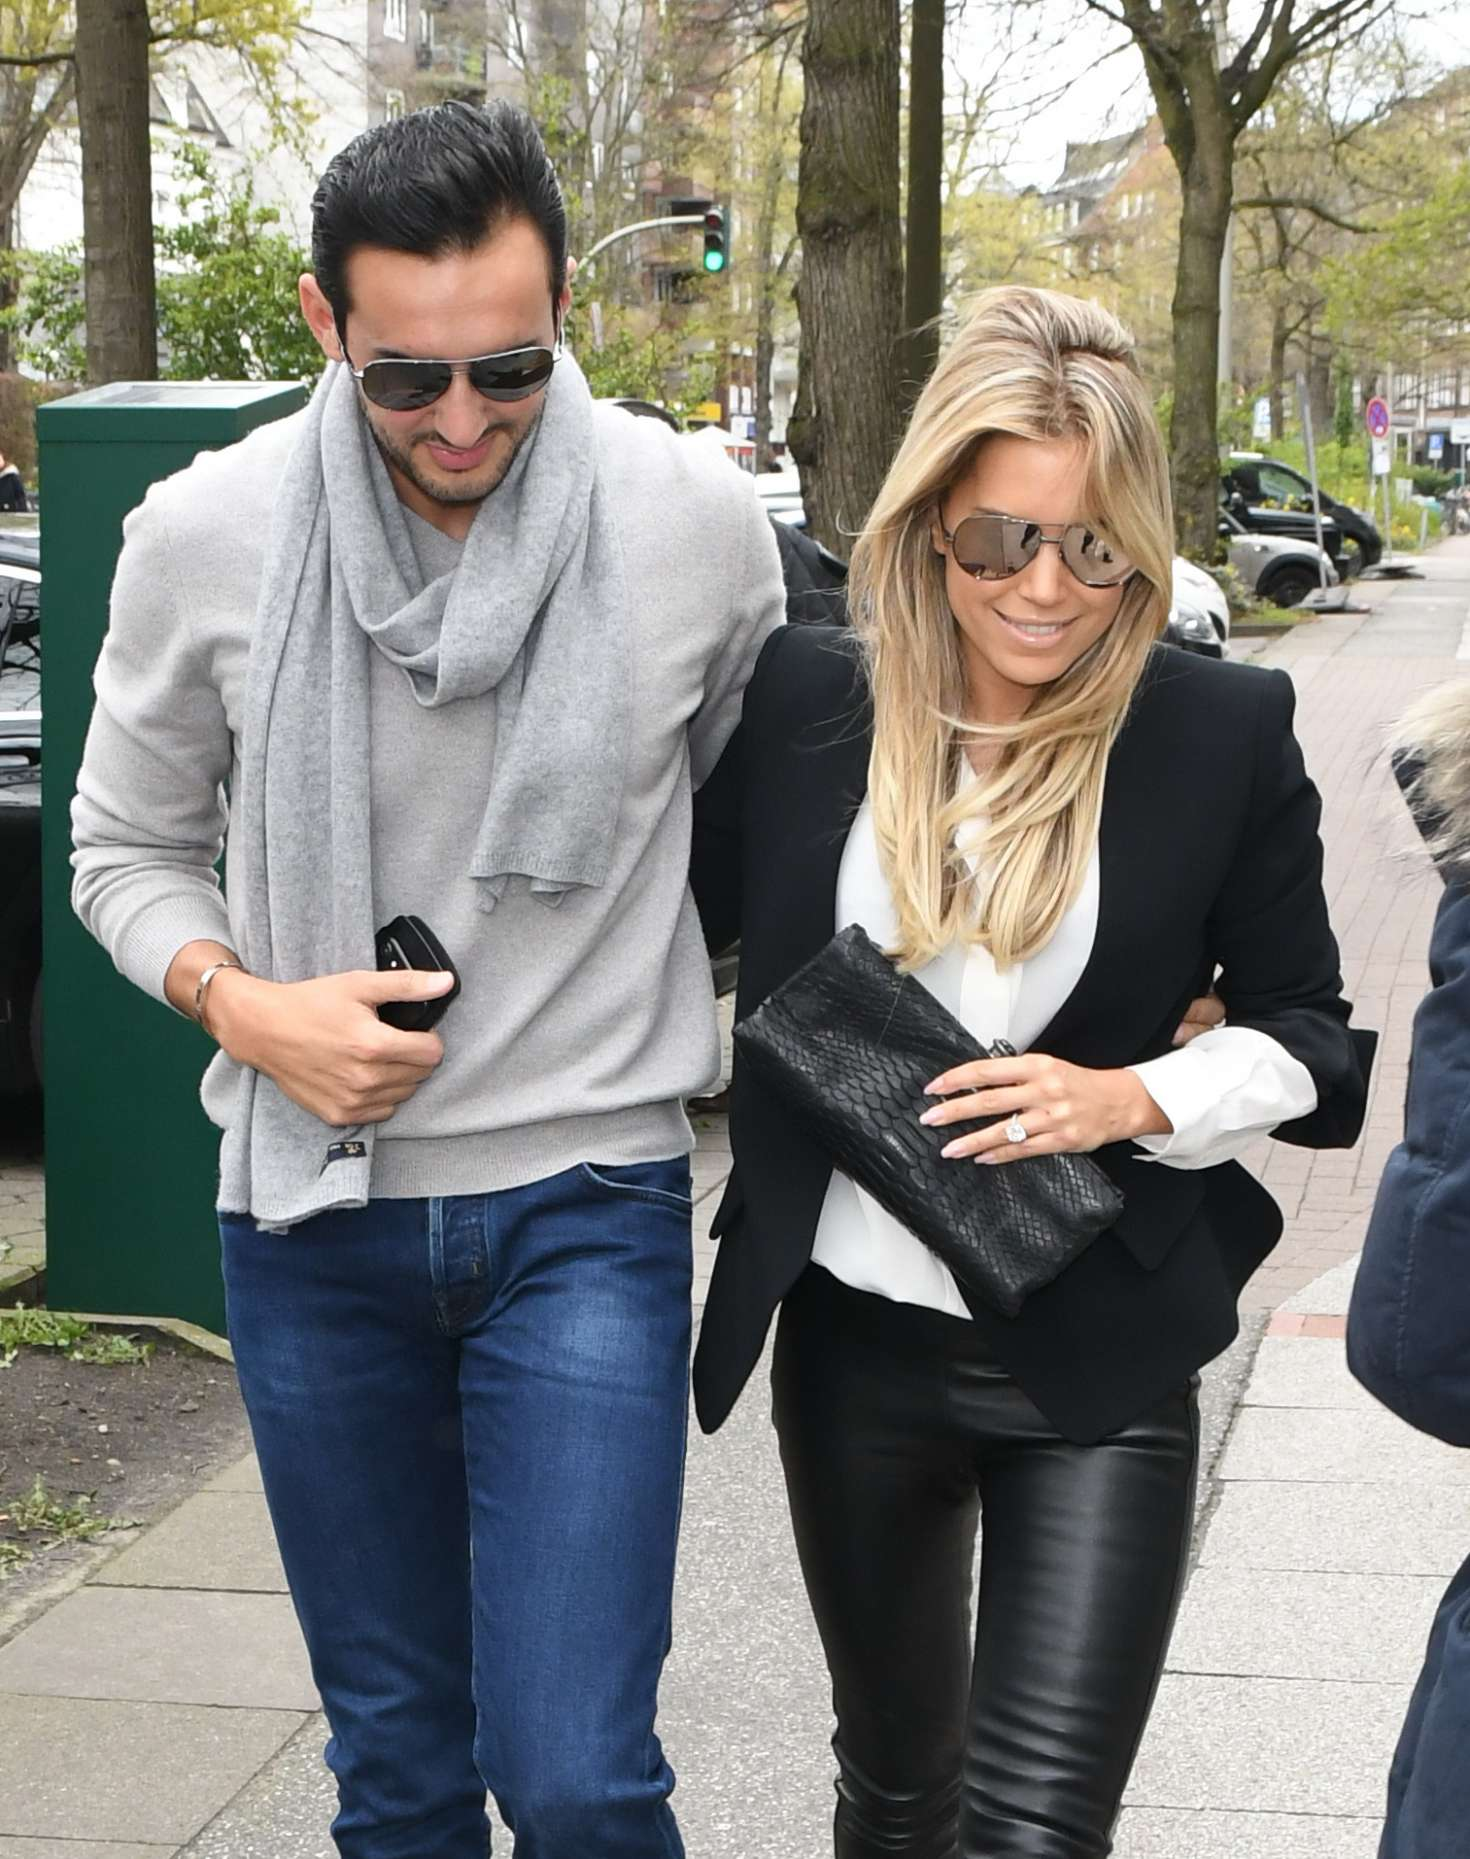 Sylvie Meis and Charbel Aouad out in Hamburg